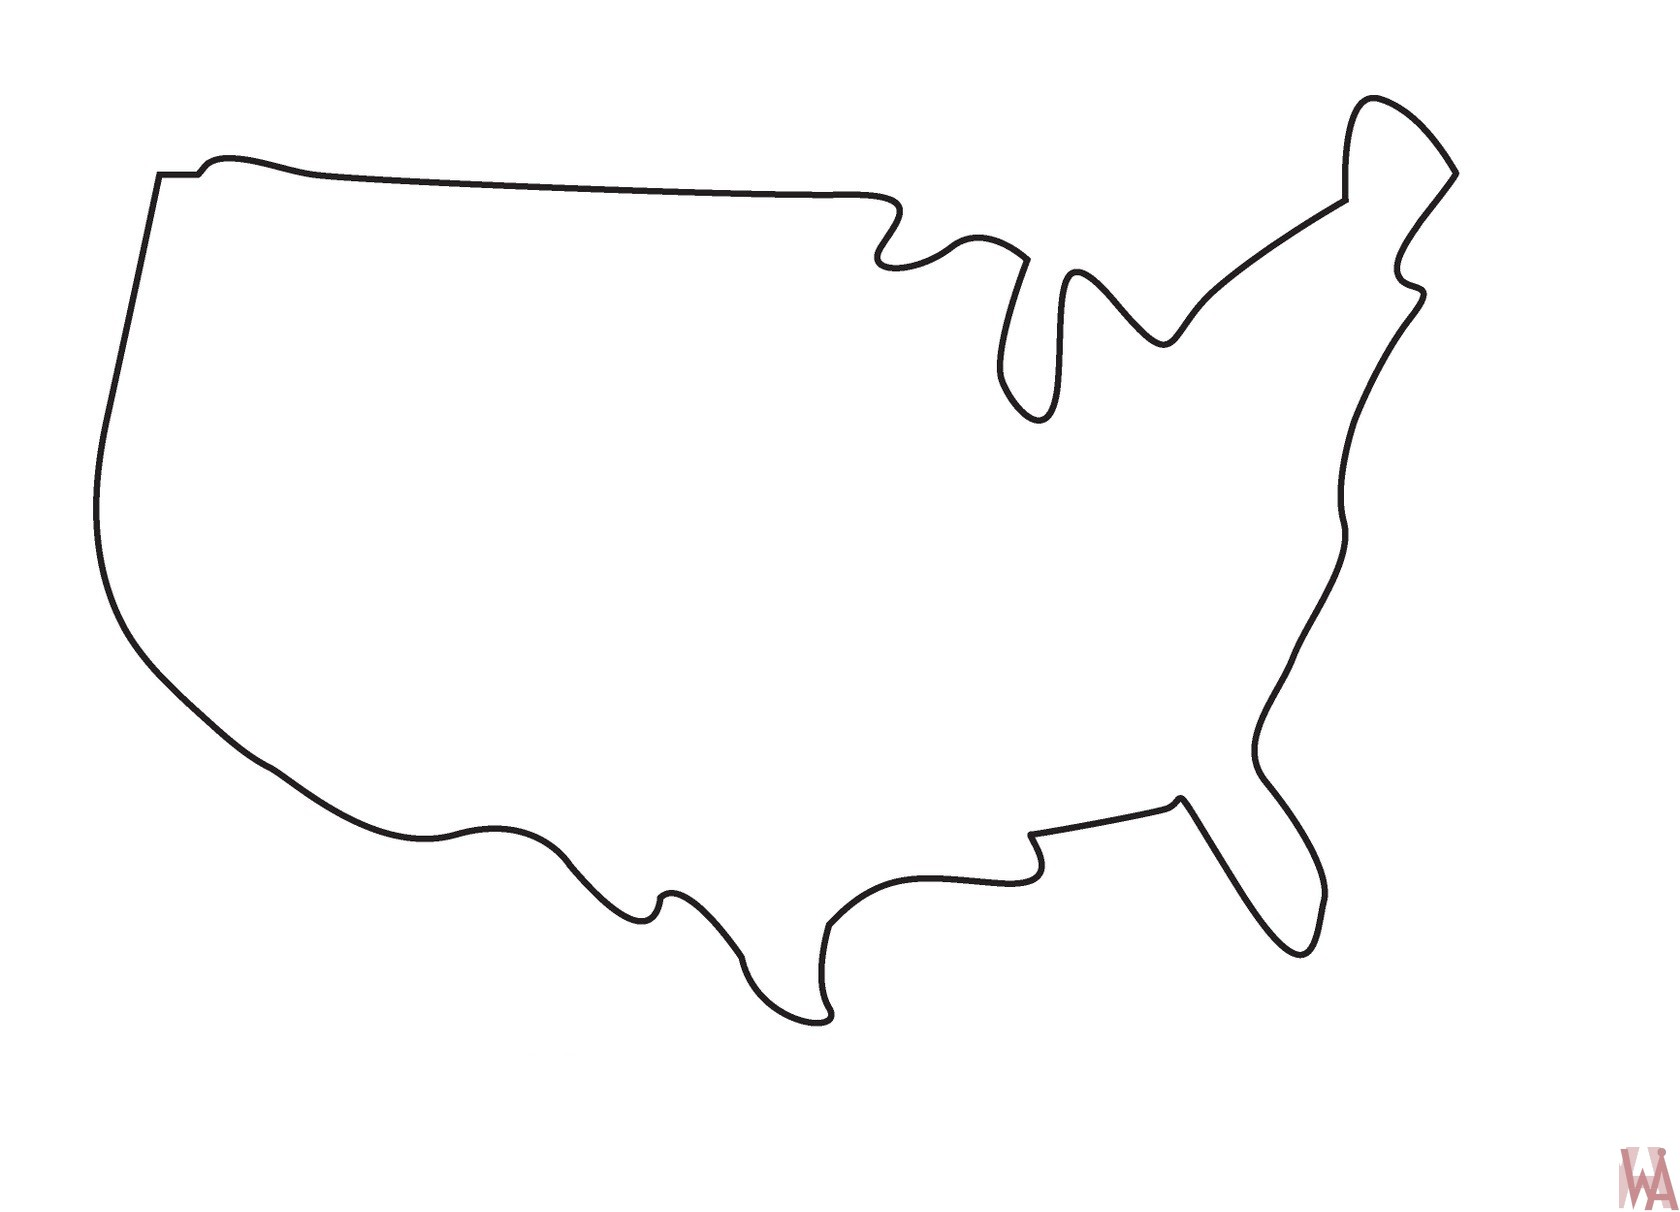 Blank Outline Map Of The United States Country Border Whatsanswer - Blank-us-outline-map